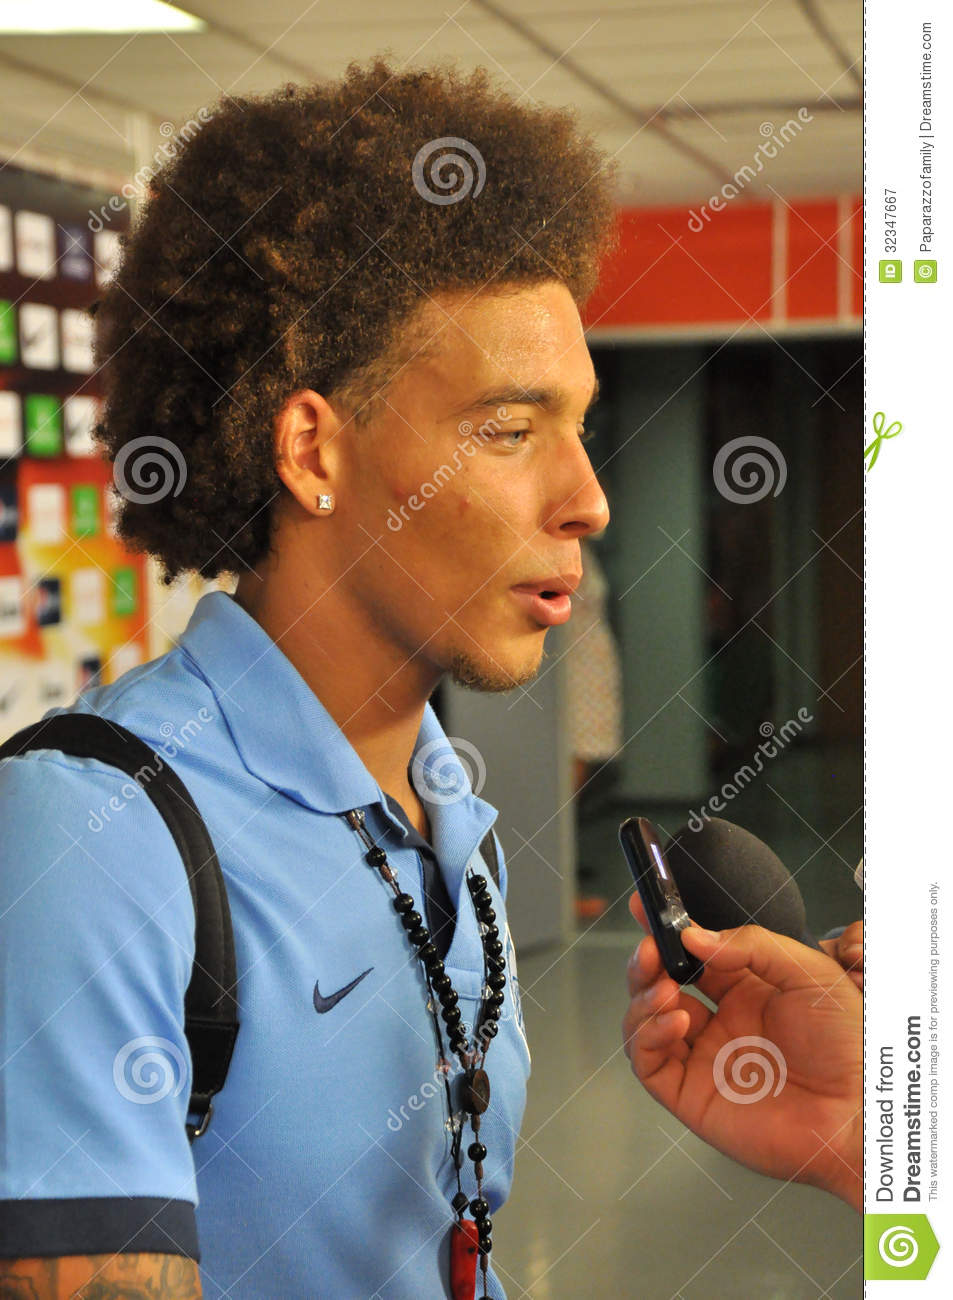 Axel Witsel Giving An Interview Editorial graphy Image